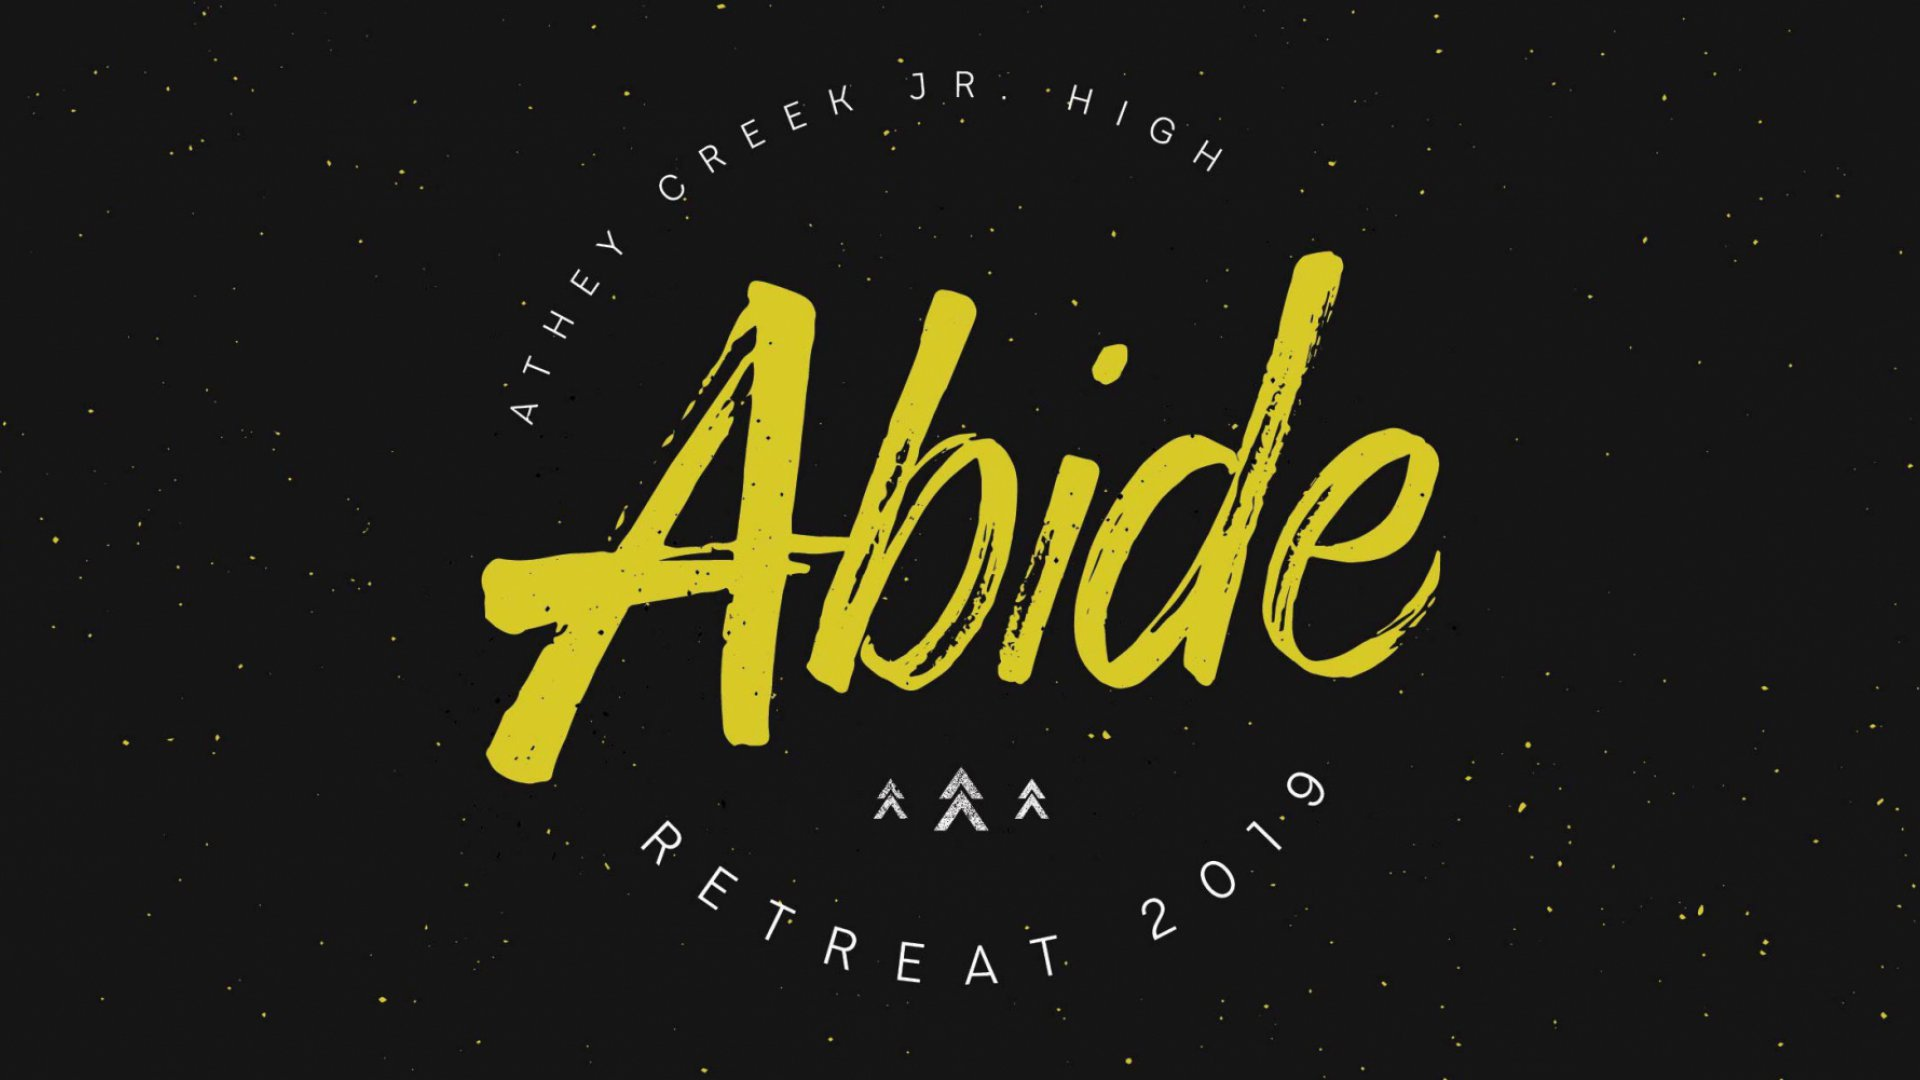 Poster for Abide Retreat